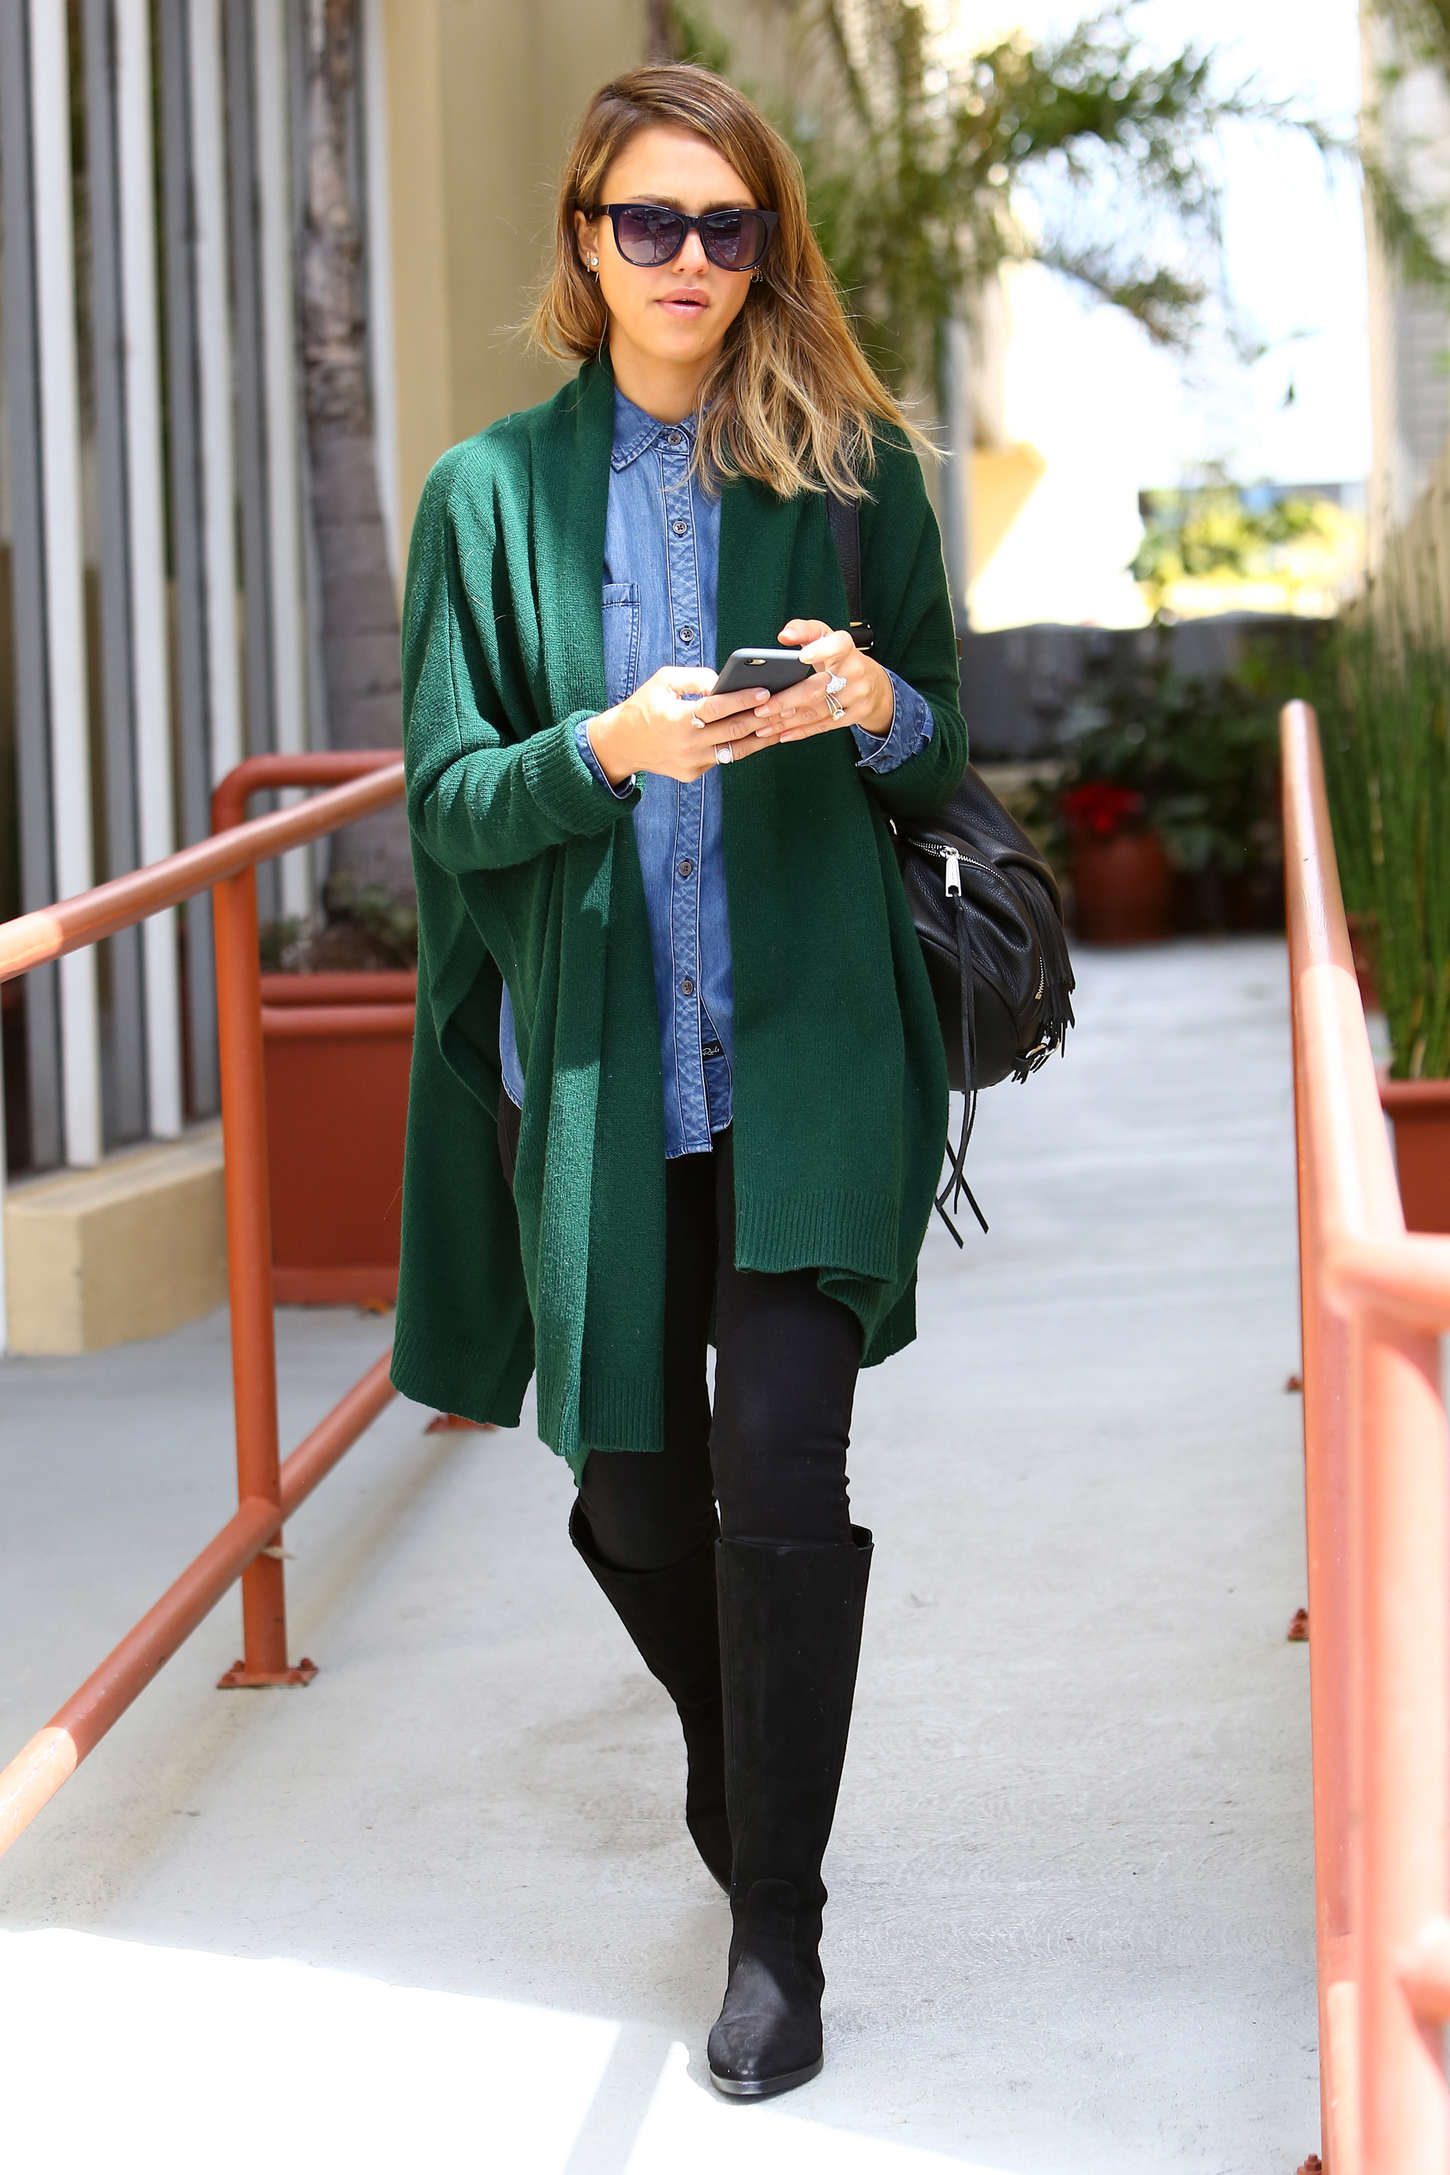 http://www.gotceleb.com/wp-content/uploads/photos/jessica-alba/in-green-sweaters-out-in-santa-monica/Jessica-Alba-in-Green-Sweaters--16.jpg